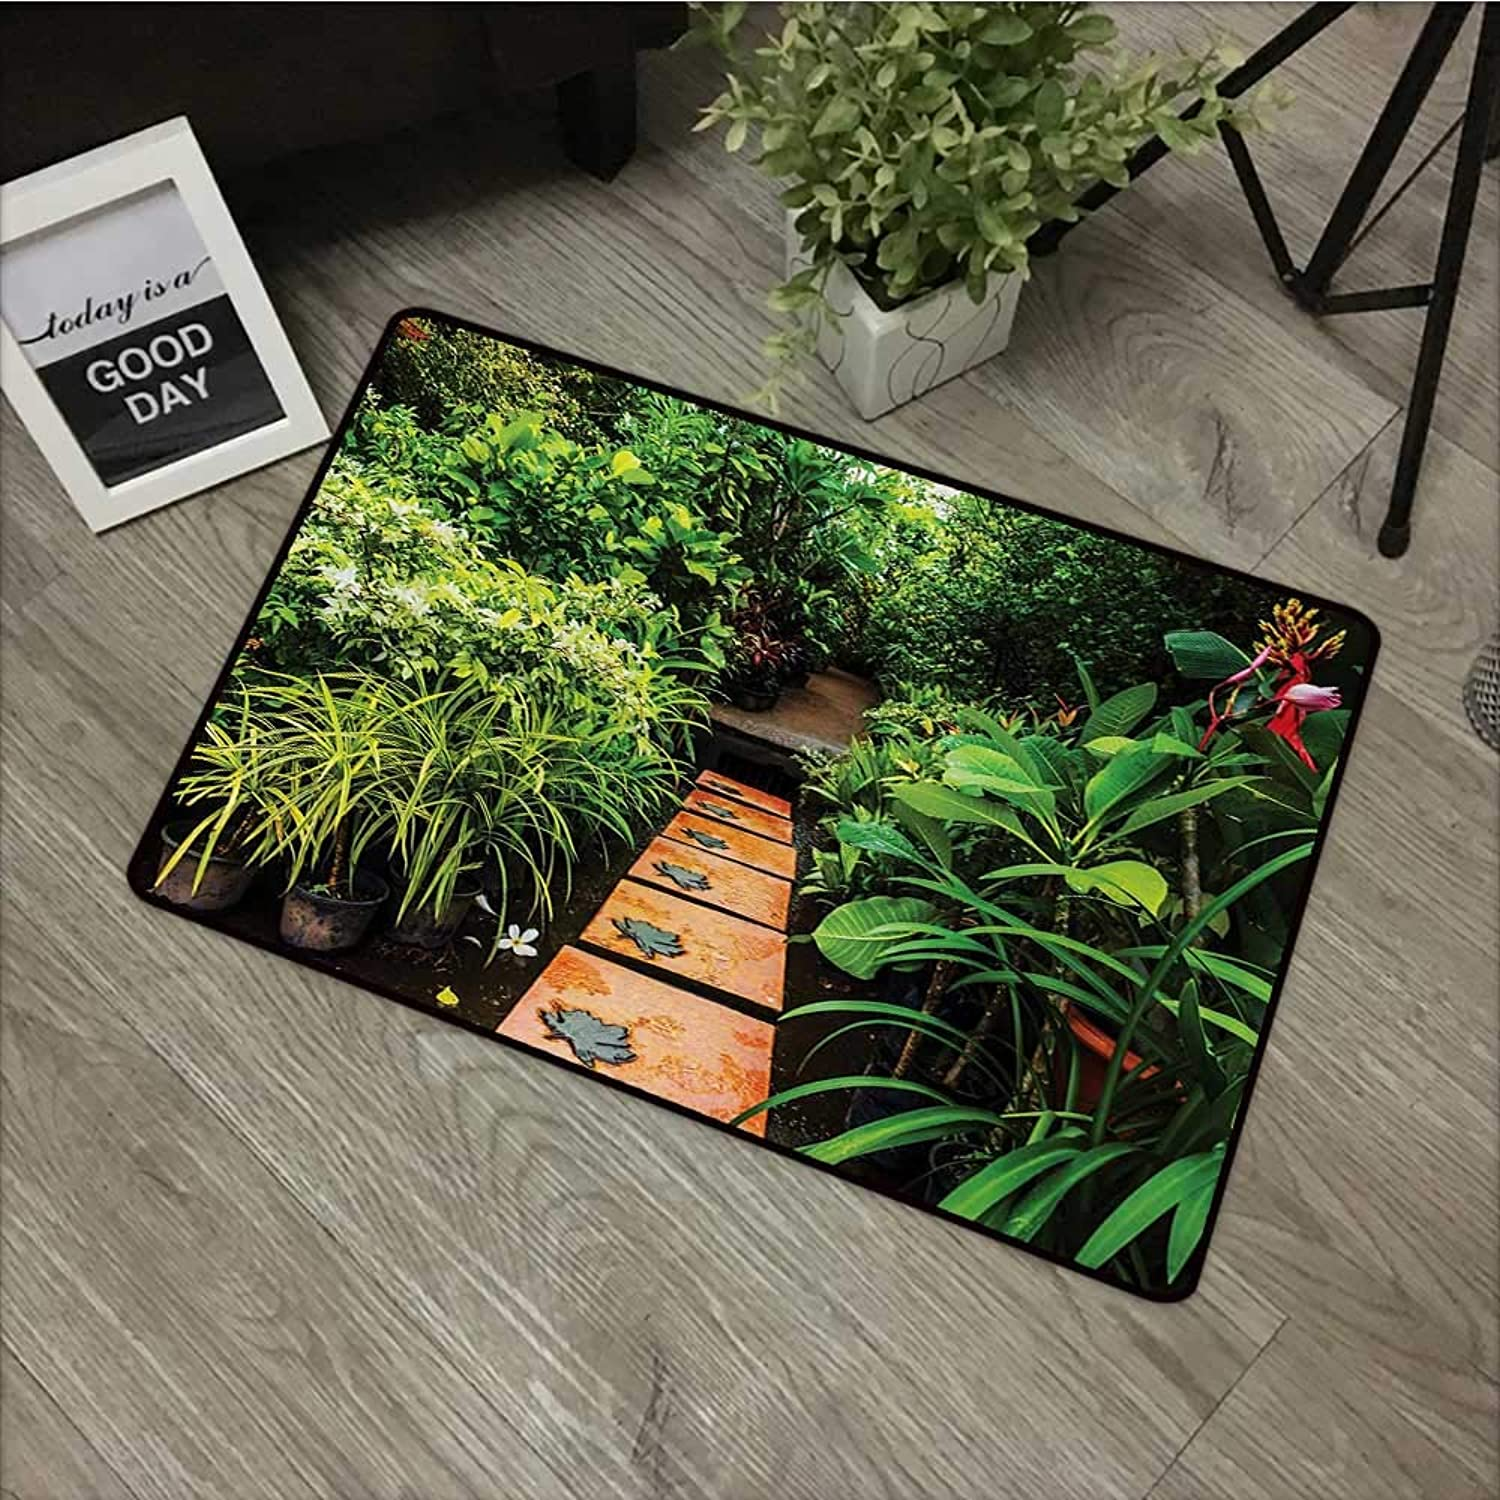 Learning pad W35 x L59 INCH Zen Garden,Lush Garden with Tropical Plants and Wooden Path Tranquility Harmony Theme,Green Pale Brown Non-Slip Door Mat Carpet